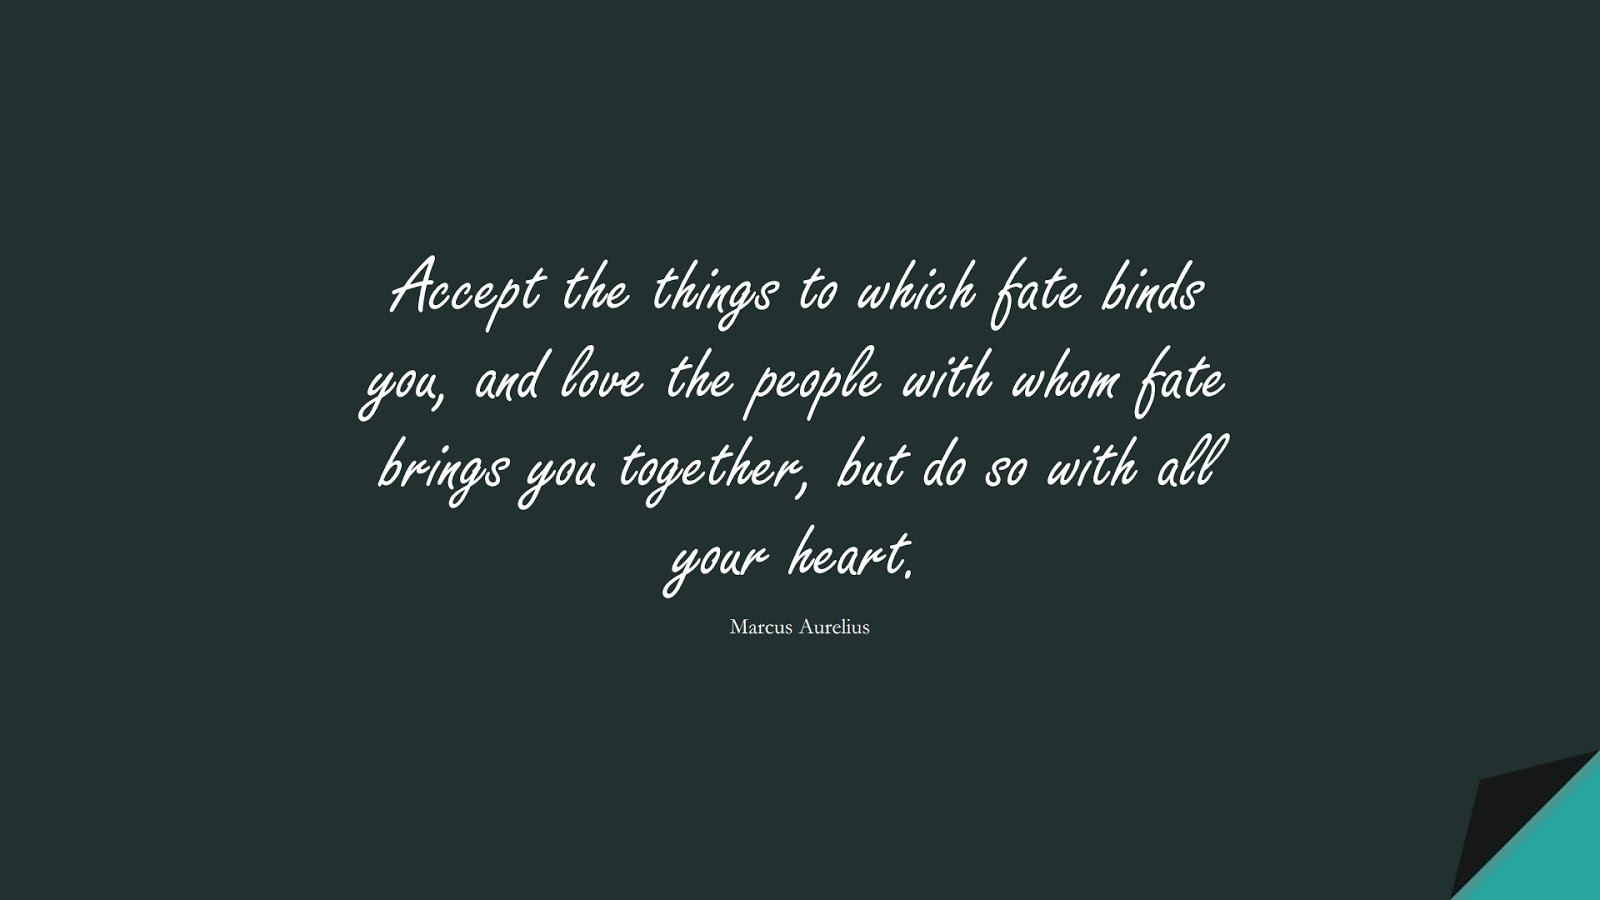 Accept the things to which fate binds you, and love the people with whom fate brings you together, but do so with all your heart. (Marcus Aurelius);  #MarcusAureliusQuotes